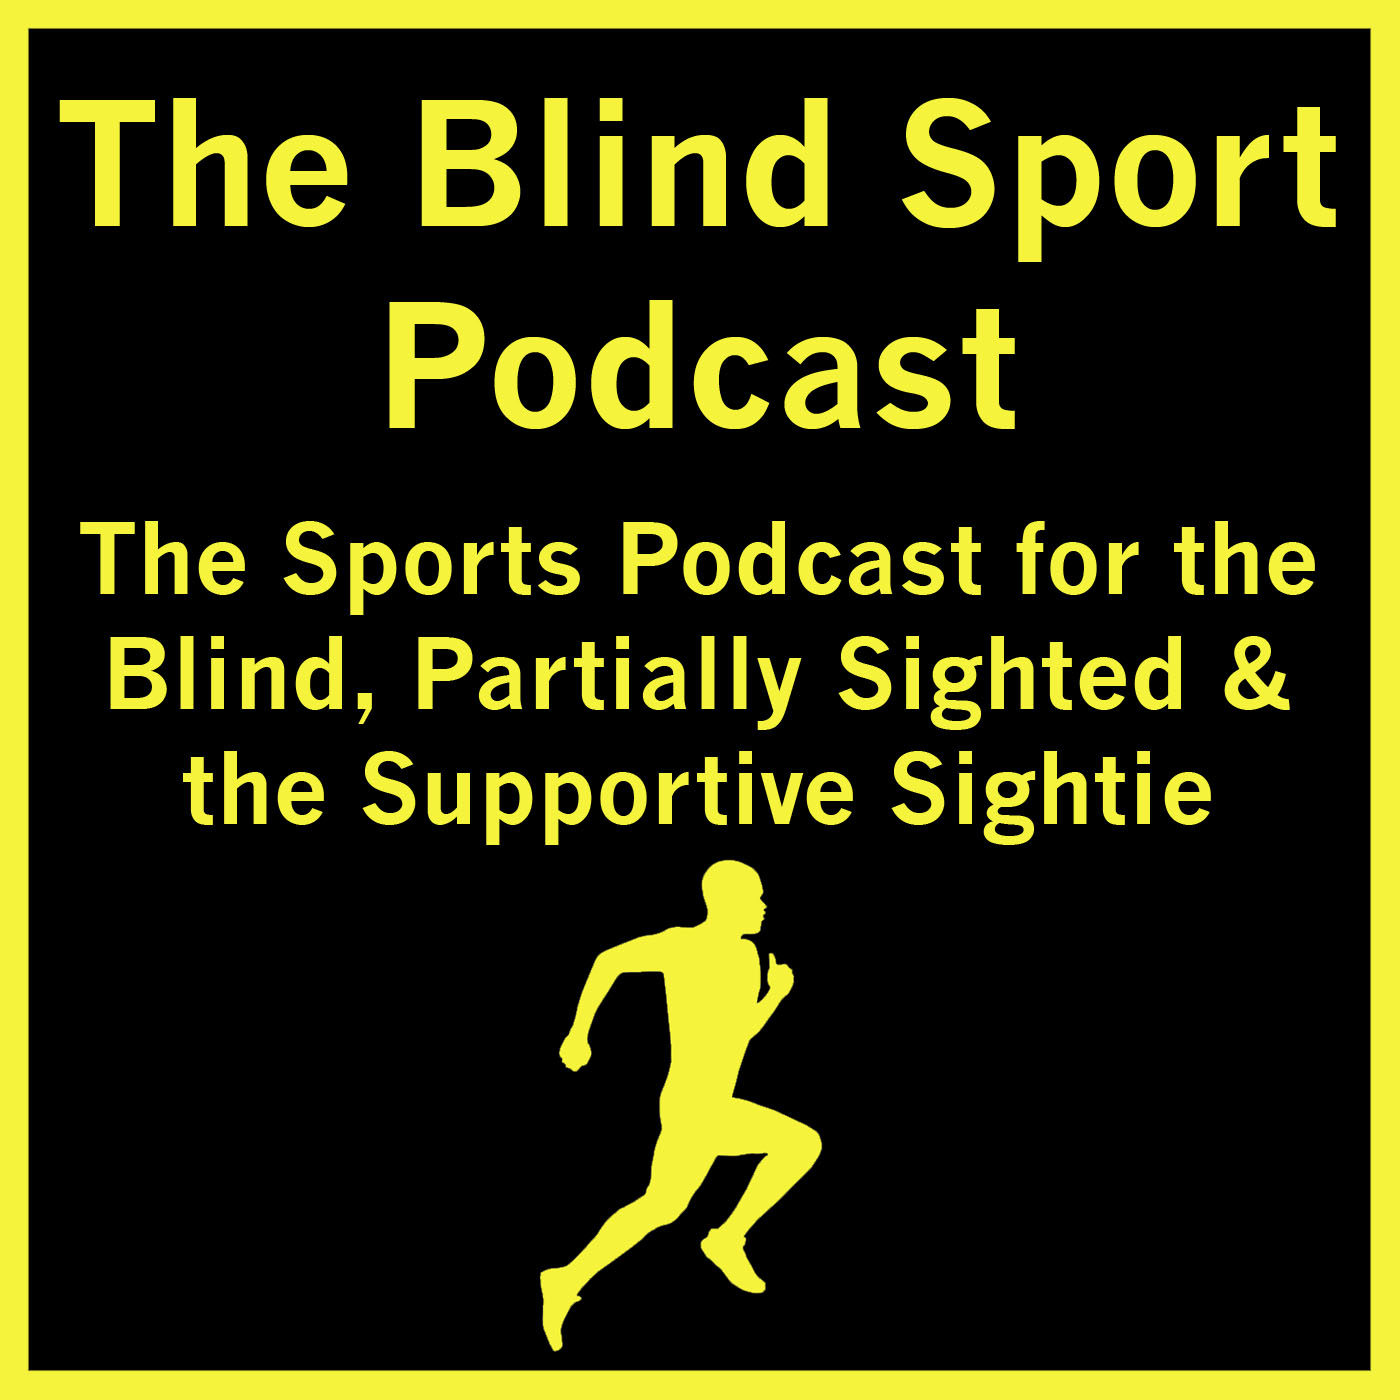 The Blind Sport Podcast